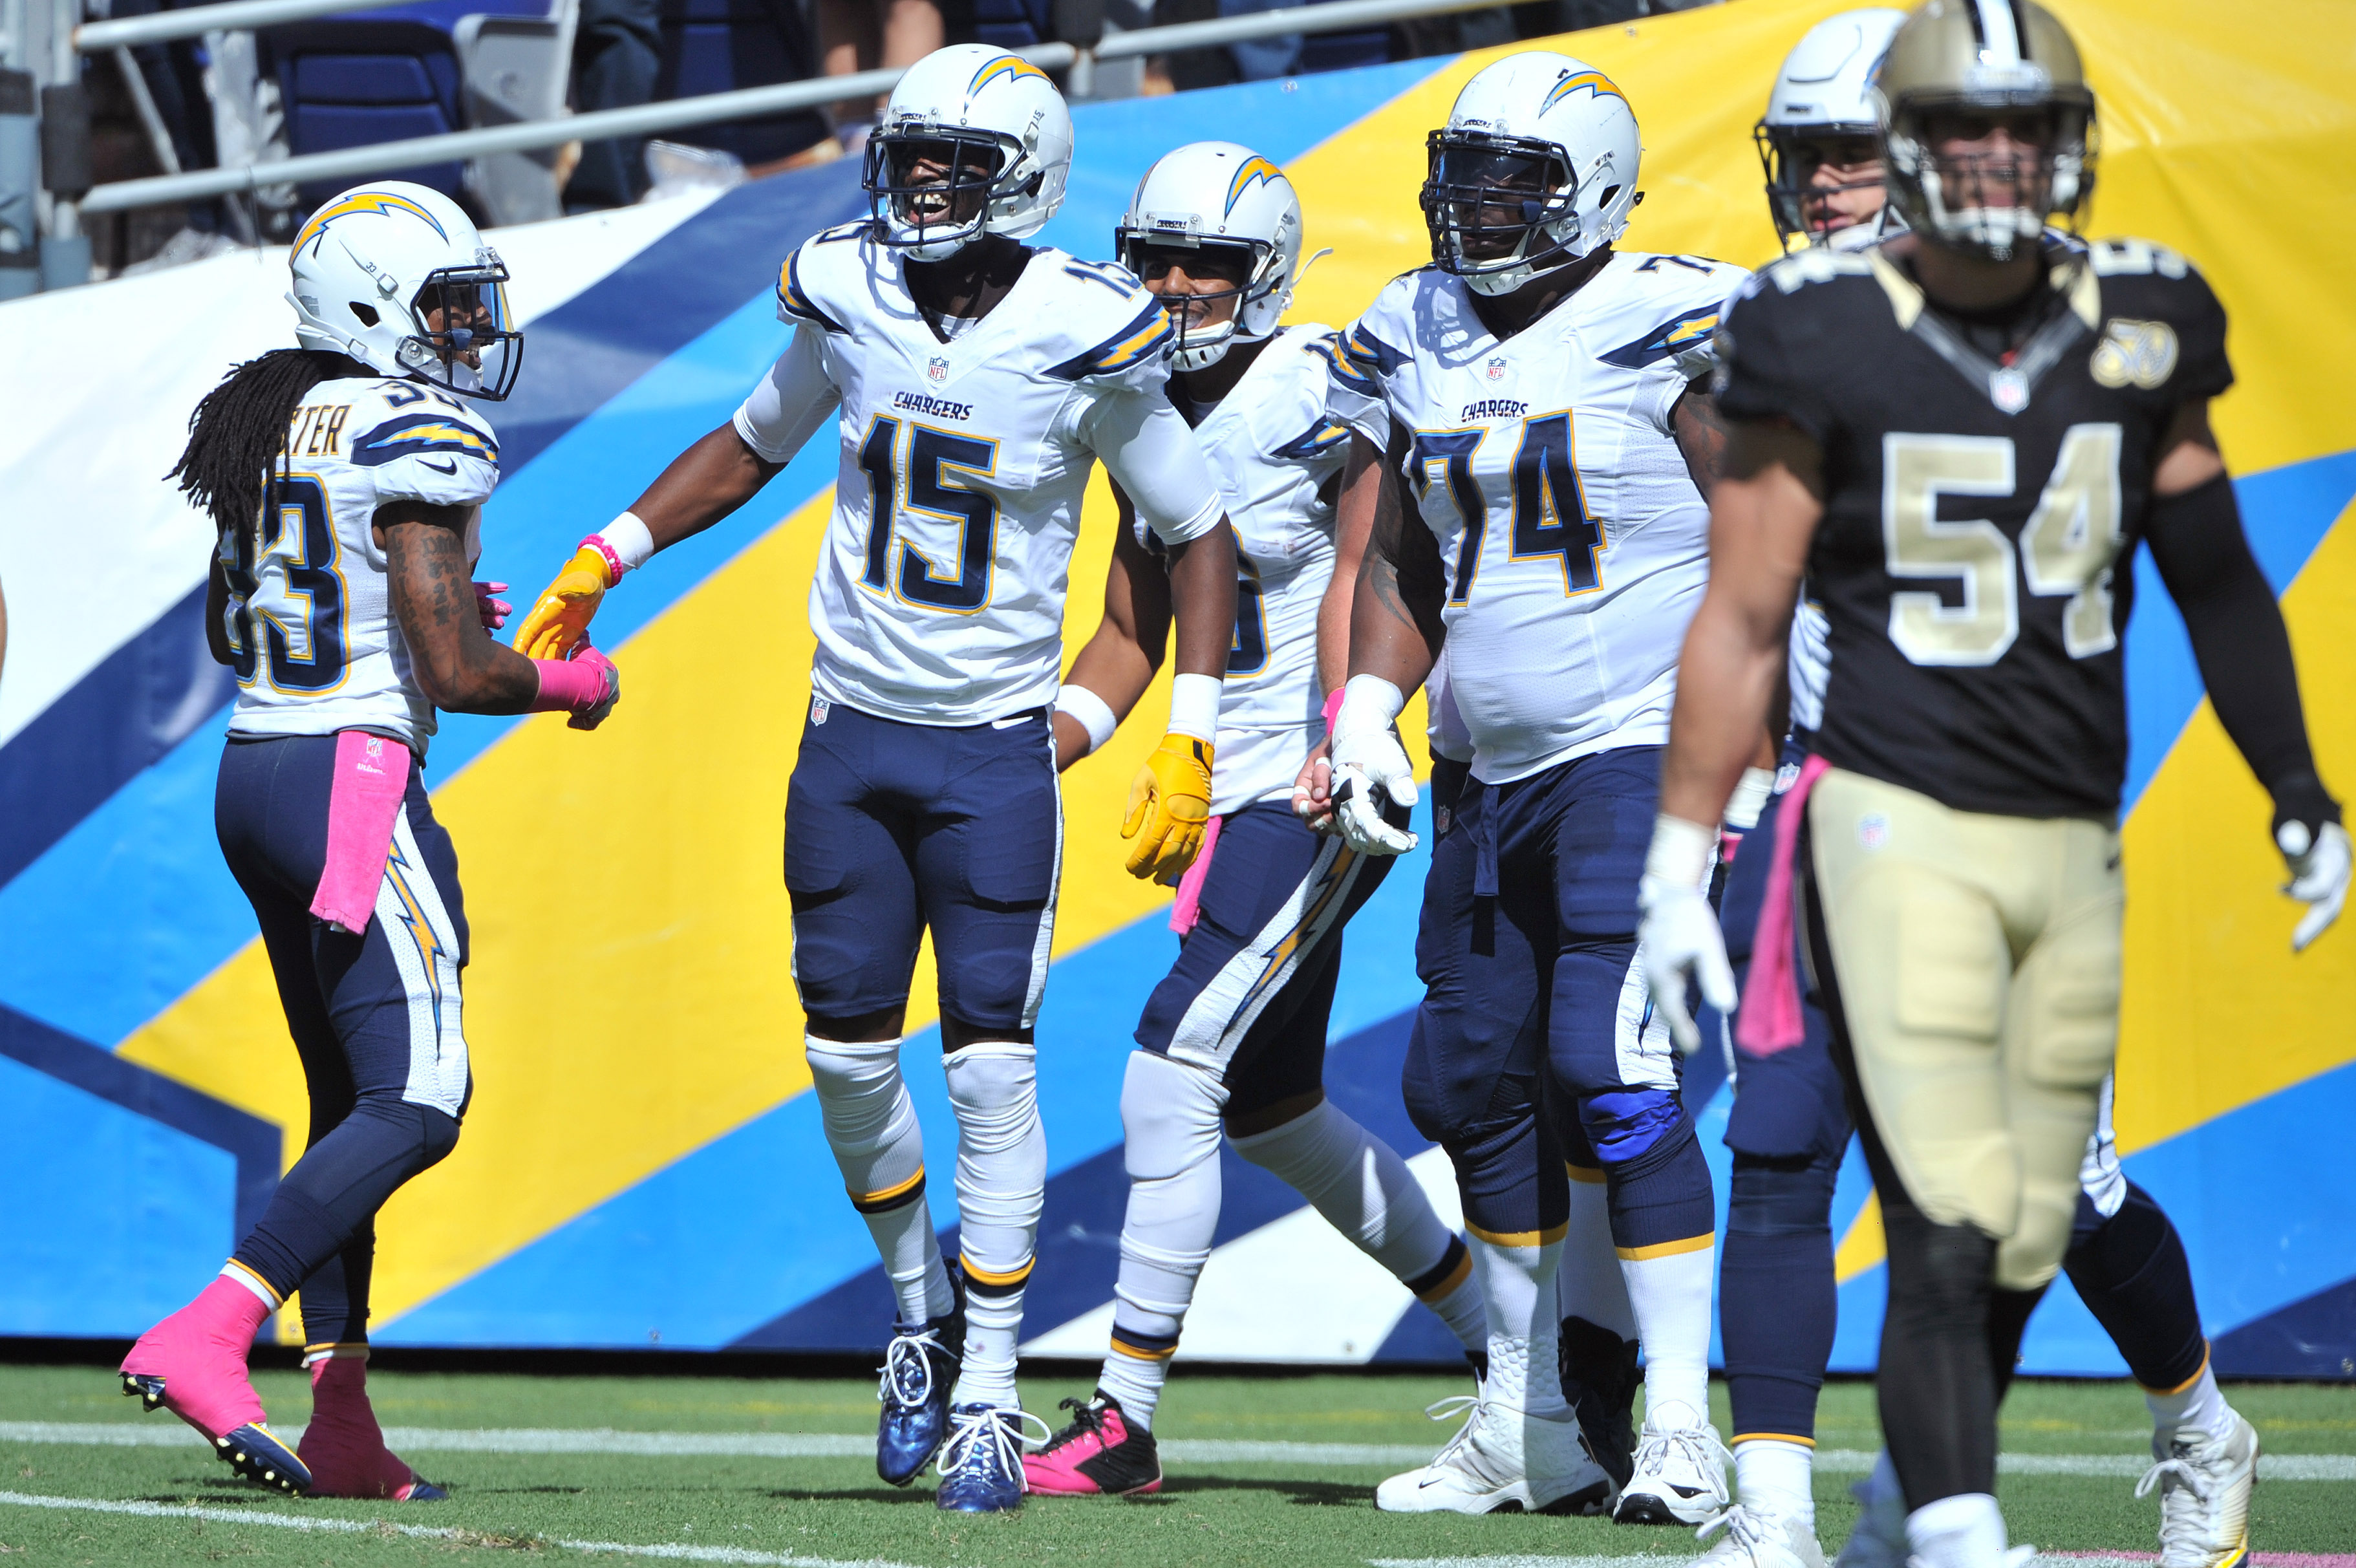 NFL: New Orleans Saints at San Diego Chargers